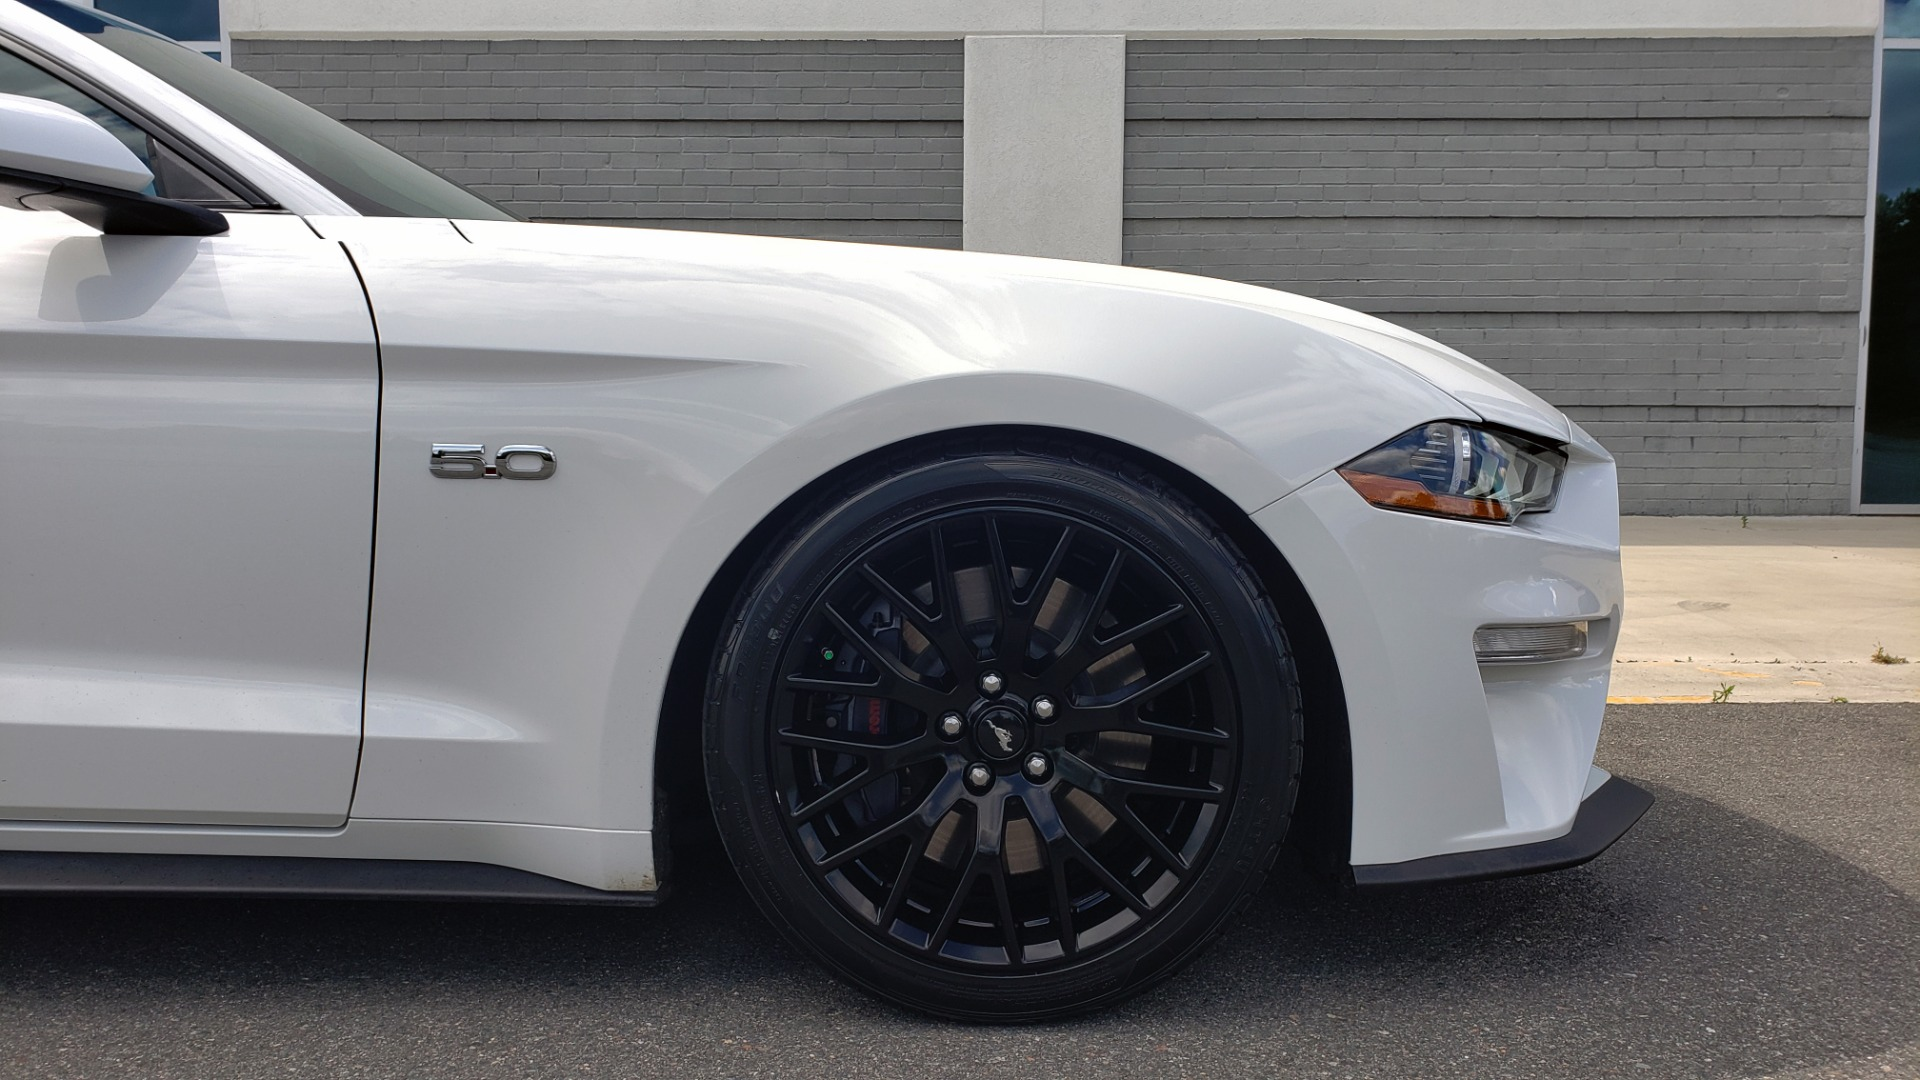 Used 2018 Ford MUSTANG GT COUPE / 5.0L V8 / AUTO / PERF PKG / REARVIEW / 19IN WHLS for sale Sold at Formula Imports in Charlotte NC 28227 70